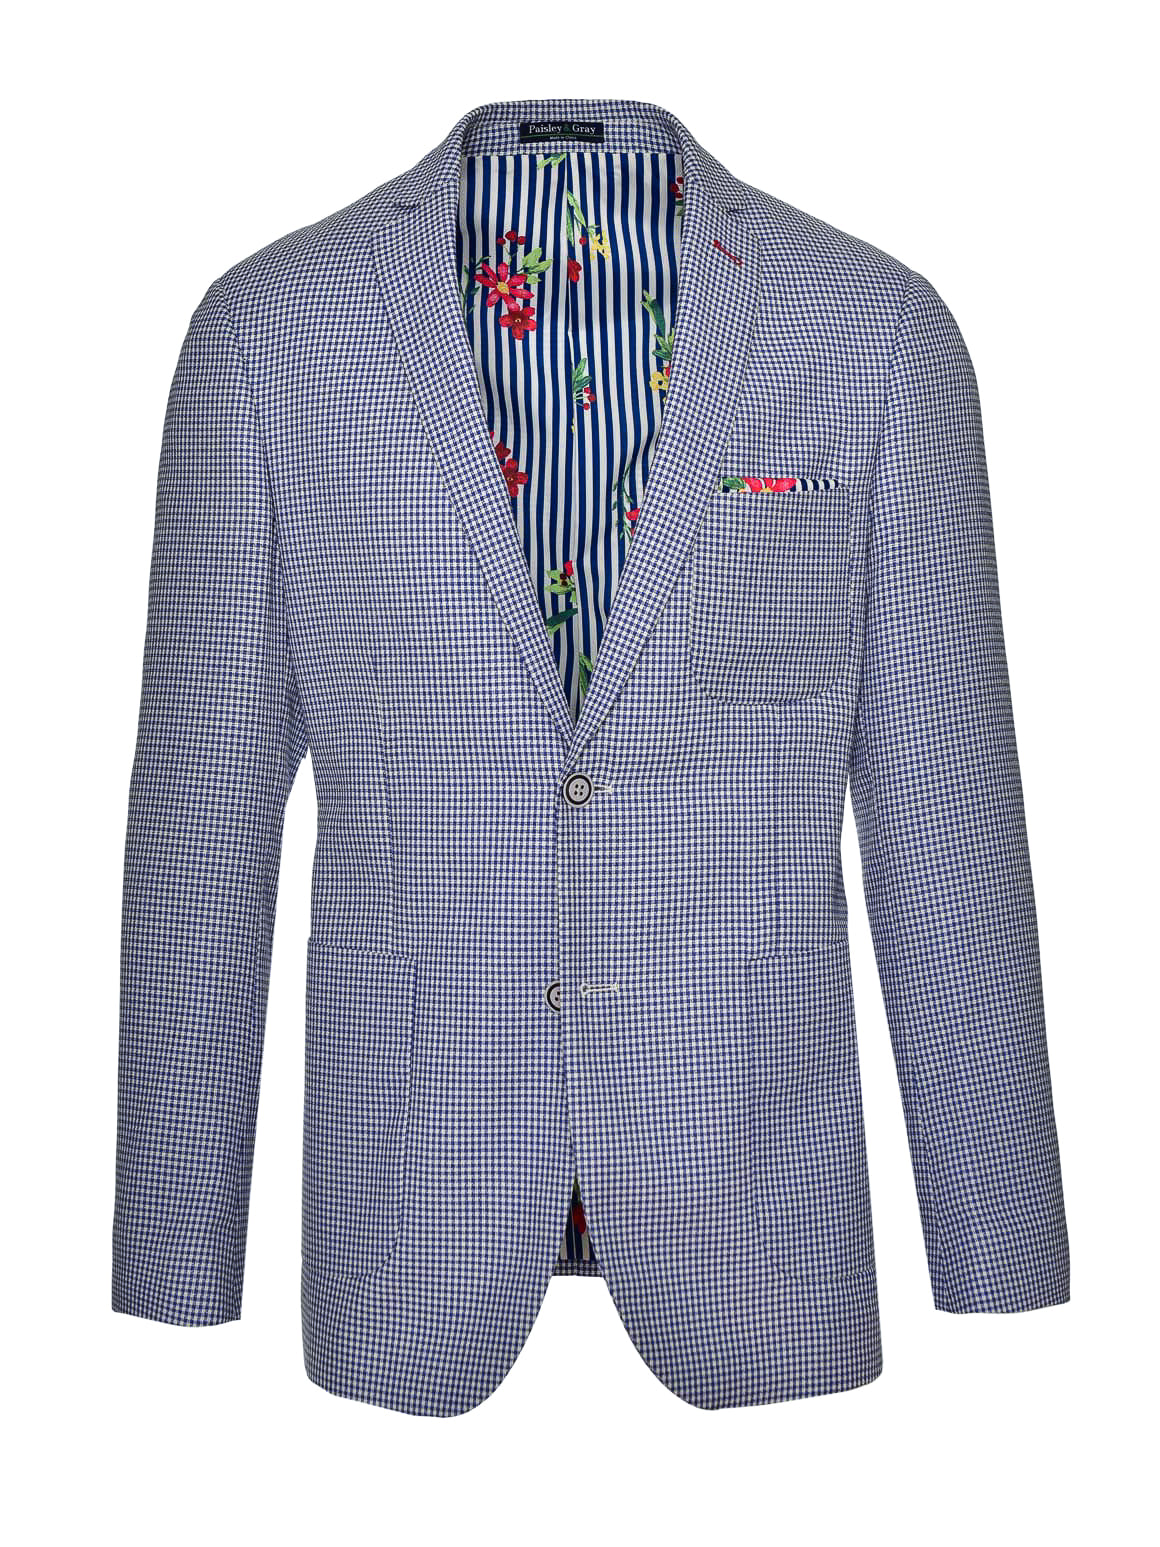 Dover Notch Jacket - Slim - Blue White Double Basket Weave